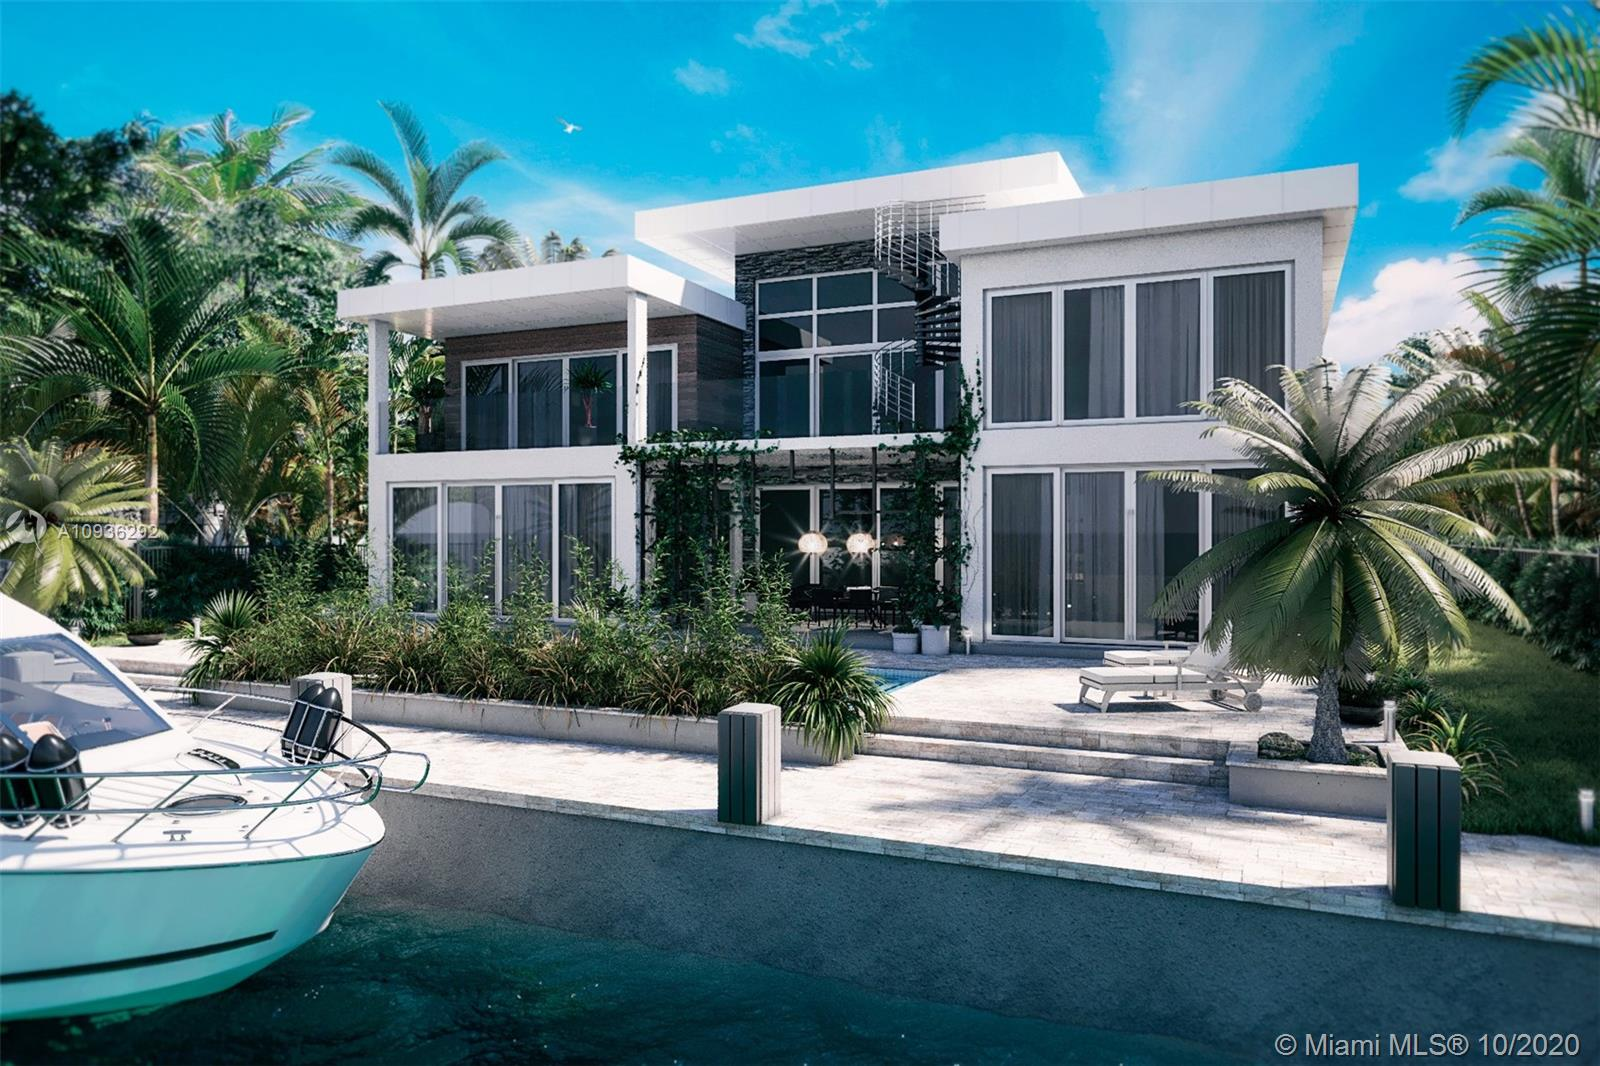 """NEW CONSTRUCTION!!Ft Lauderdale's most prestigious waterfront neighborhoods of Nurmi Isles. CONTEMPORARY 6 BED+LOFT+THEATER/BONUS RM,6.5 BATHS,3 CG, INFINITY POOL & 85 FT DOCKAGE. LINEAR FIREPLACE, MARBLE IN living areas, ESPRESSO WOOD FLOORS IN ALL BEDS. STATE OF THE ART GOURMET CHEF'S Kitchen, SS, 48"""" BUILT-IN REF,6 BURNER GAS COOKTOP, DBL OVENS, VENTED EXHAUST HOOD, POT FILLER & QUARTZ COUNTERTOPS. MASTER BED WITH WALK-IN CLOSET, SITTING RM &COVERED BALCONY OVERLOOKING POOL& WATER. MASTER BATH SPA SUITE WITH MARBLE FLOORS, SEPARATE HIS & HER VANITIES, JACUZZI, RAINHEAD SHOWER & BODY SPRAYS. Walk to shops & beaches, quick ocean access. FOR SHOWING CONTACT MARINA 786-440-3066"""